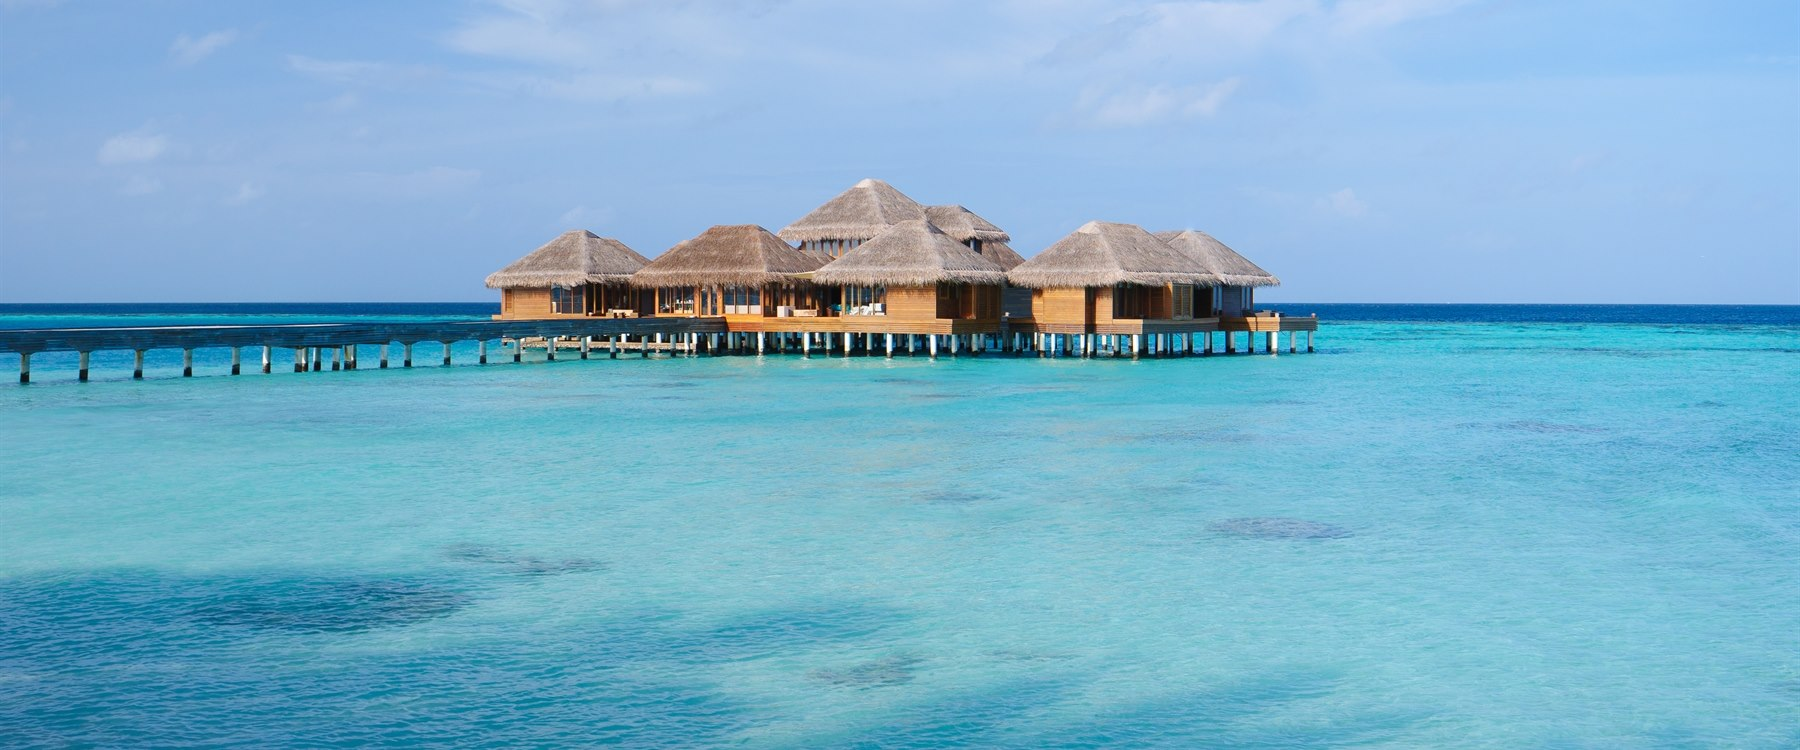 Spa Exterior at Huvafen Fushi, Maldives